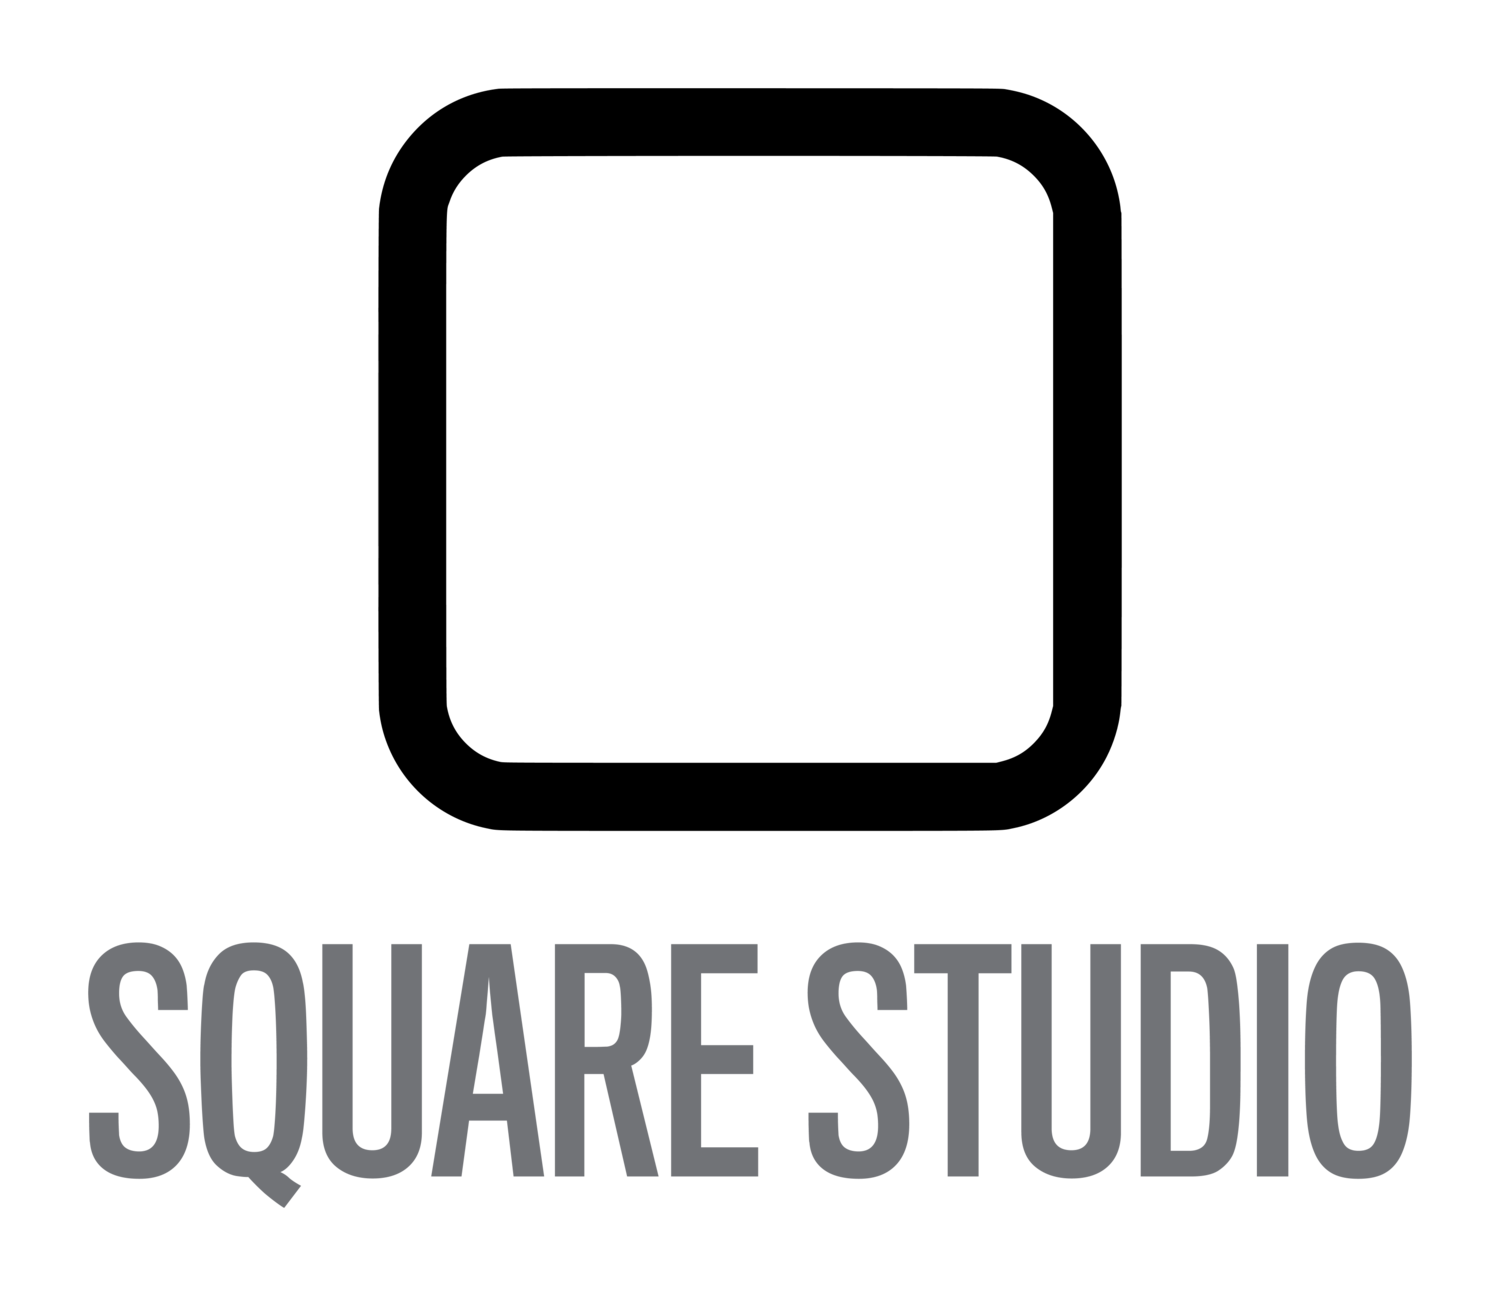 SQUARE STUDIO - WEB DESIGN, SEO E INBOUND MARKETING